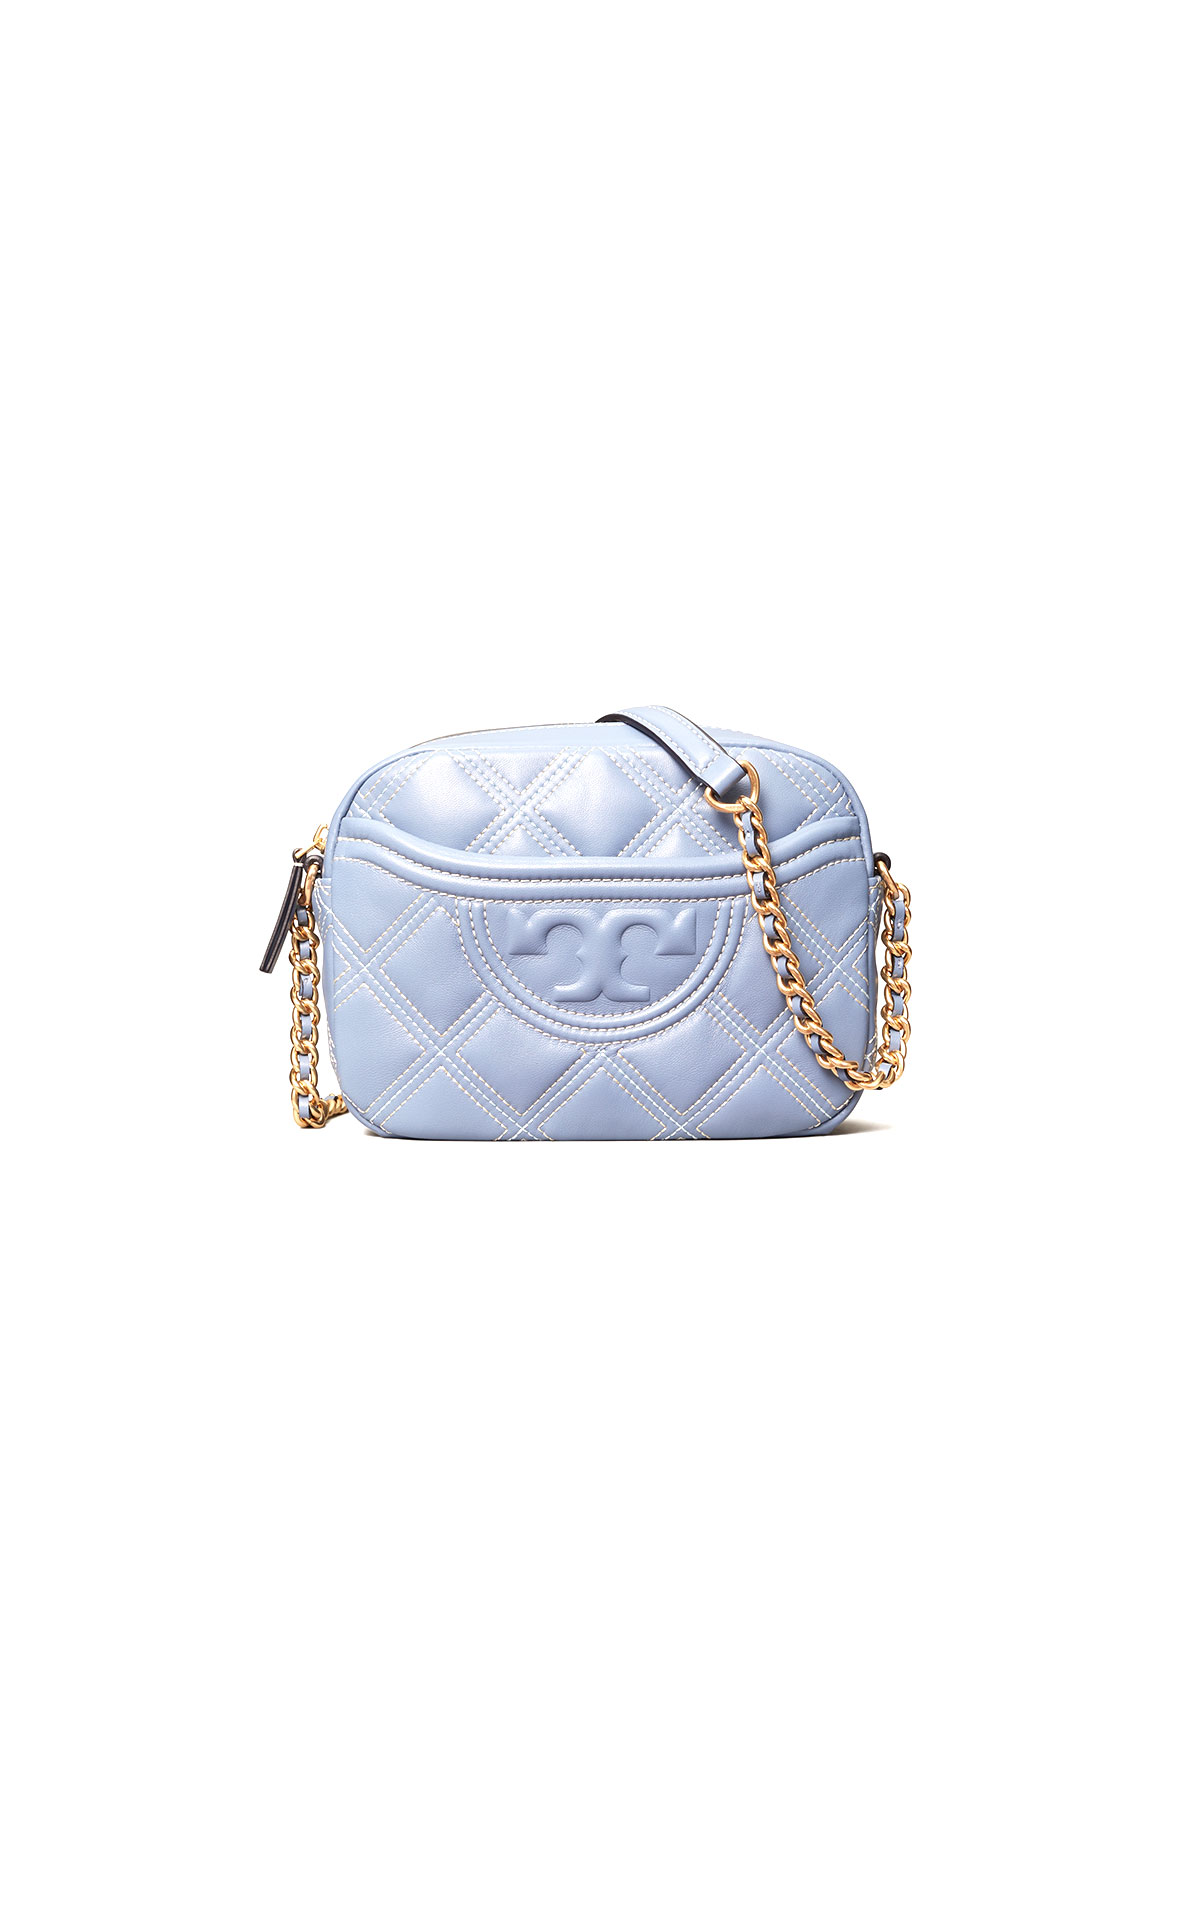 La Vallée Village Tory Burch sac bleu